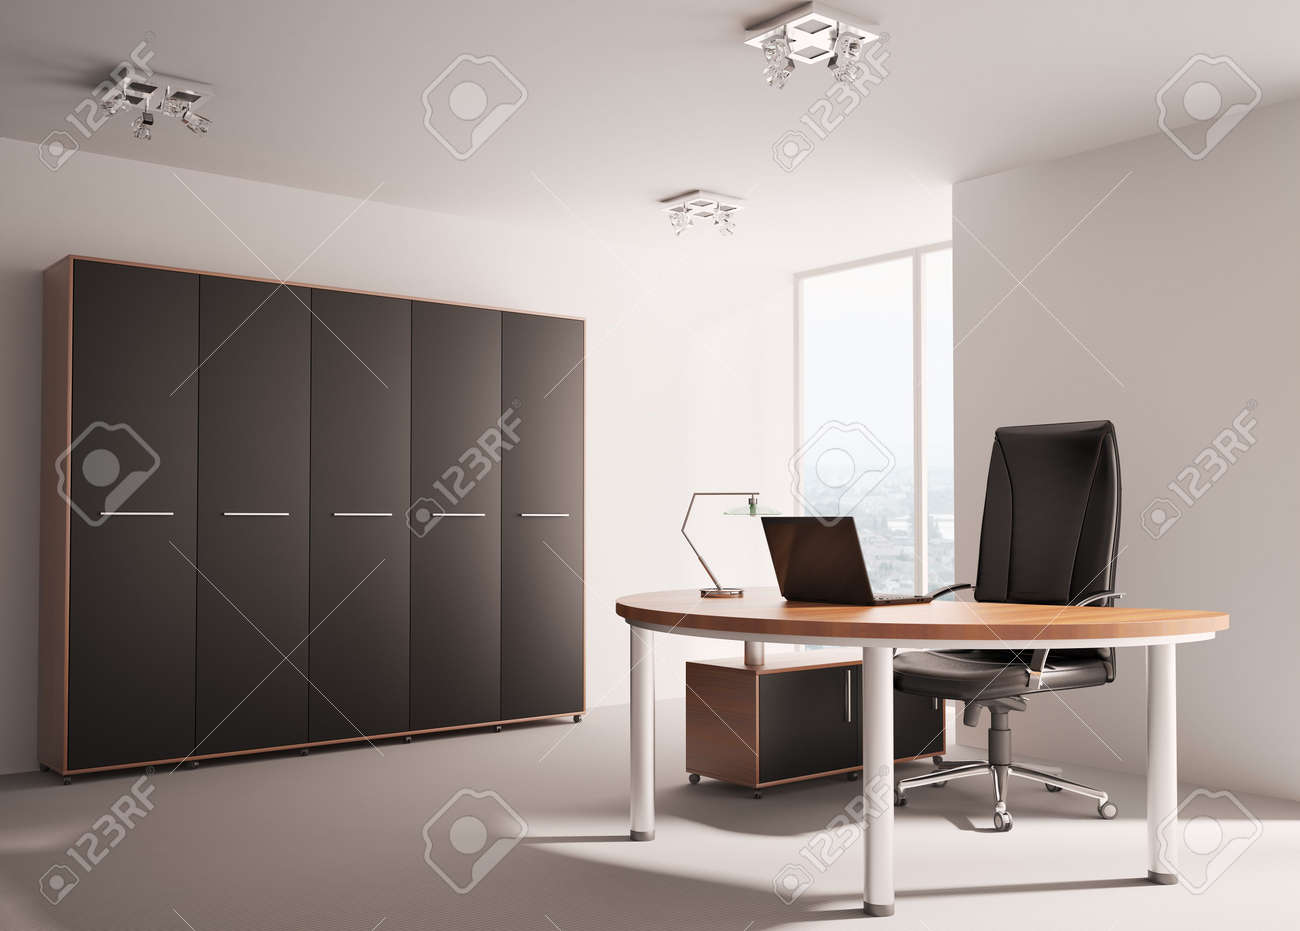 Modern office with wooden table interior 3d render Stock Photo - 6744755